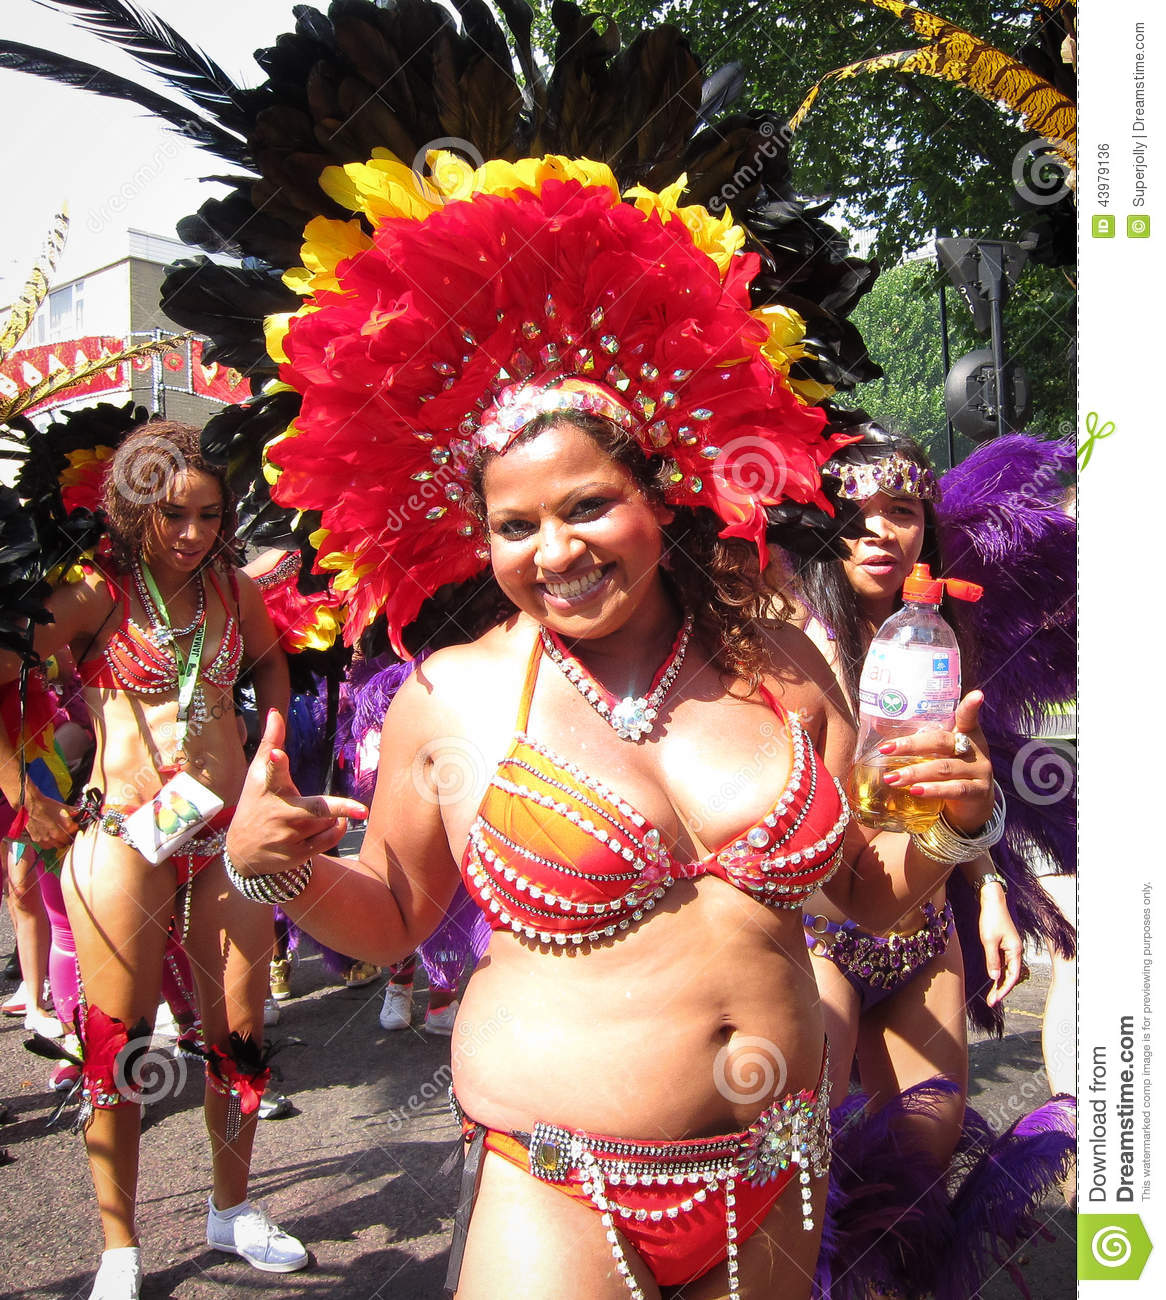 Hot Nude Rio Carnival Thumbs 33